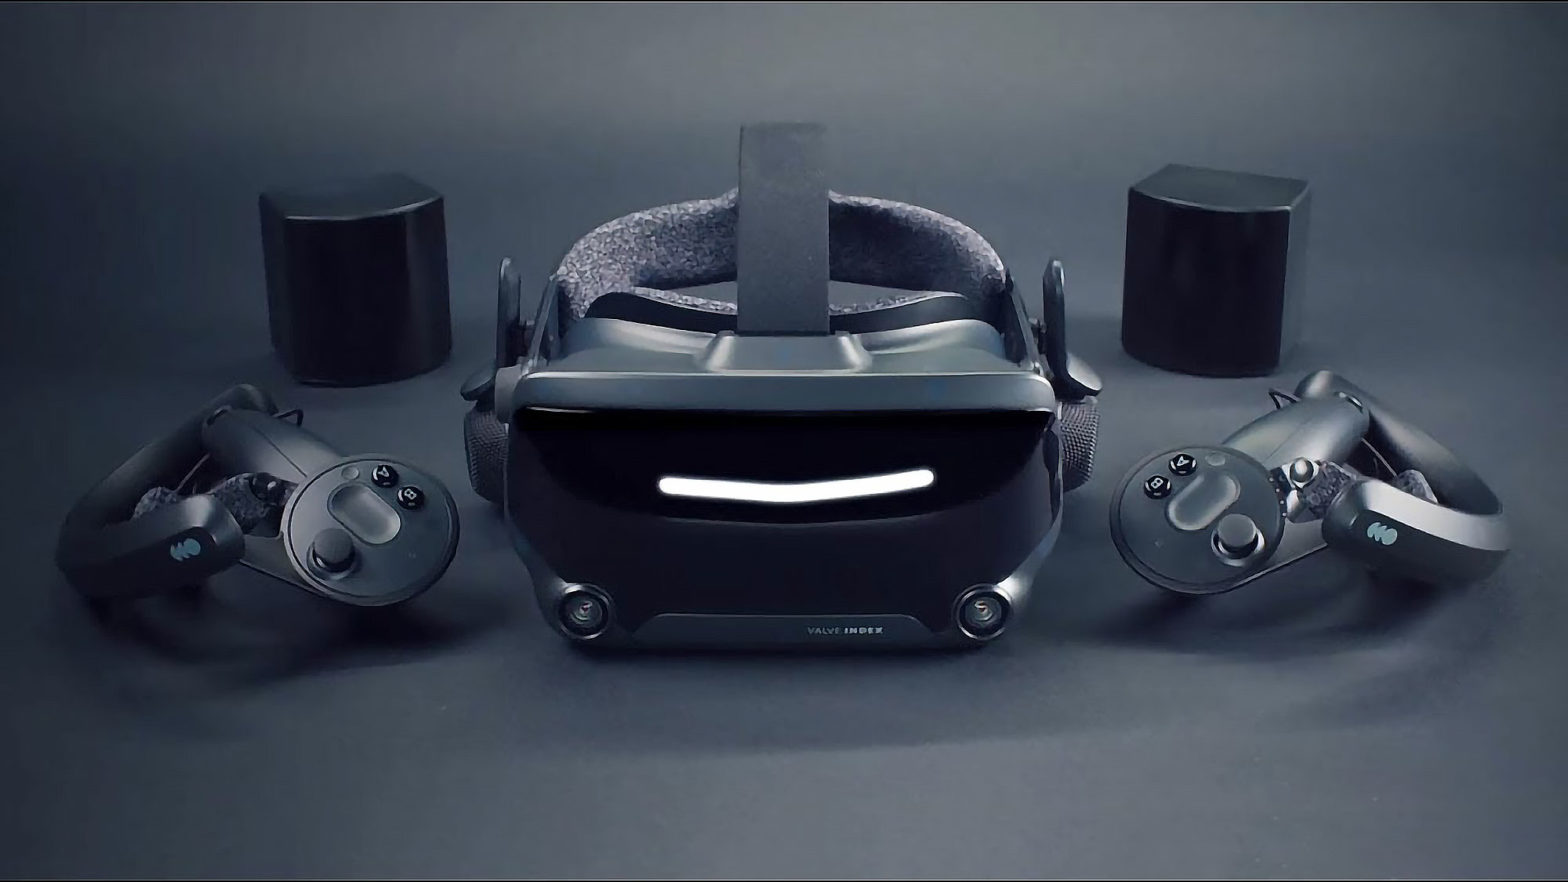 Best VR Headsets Of 2019